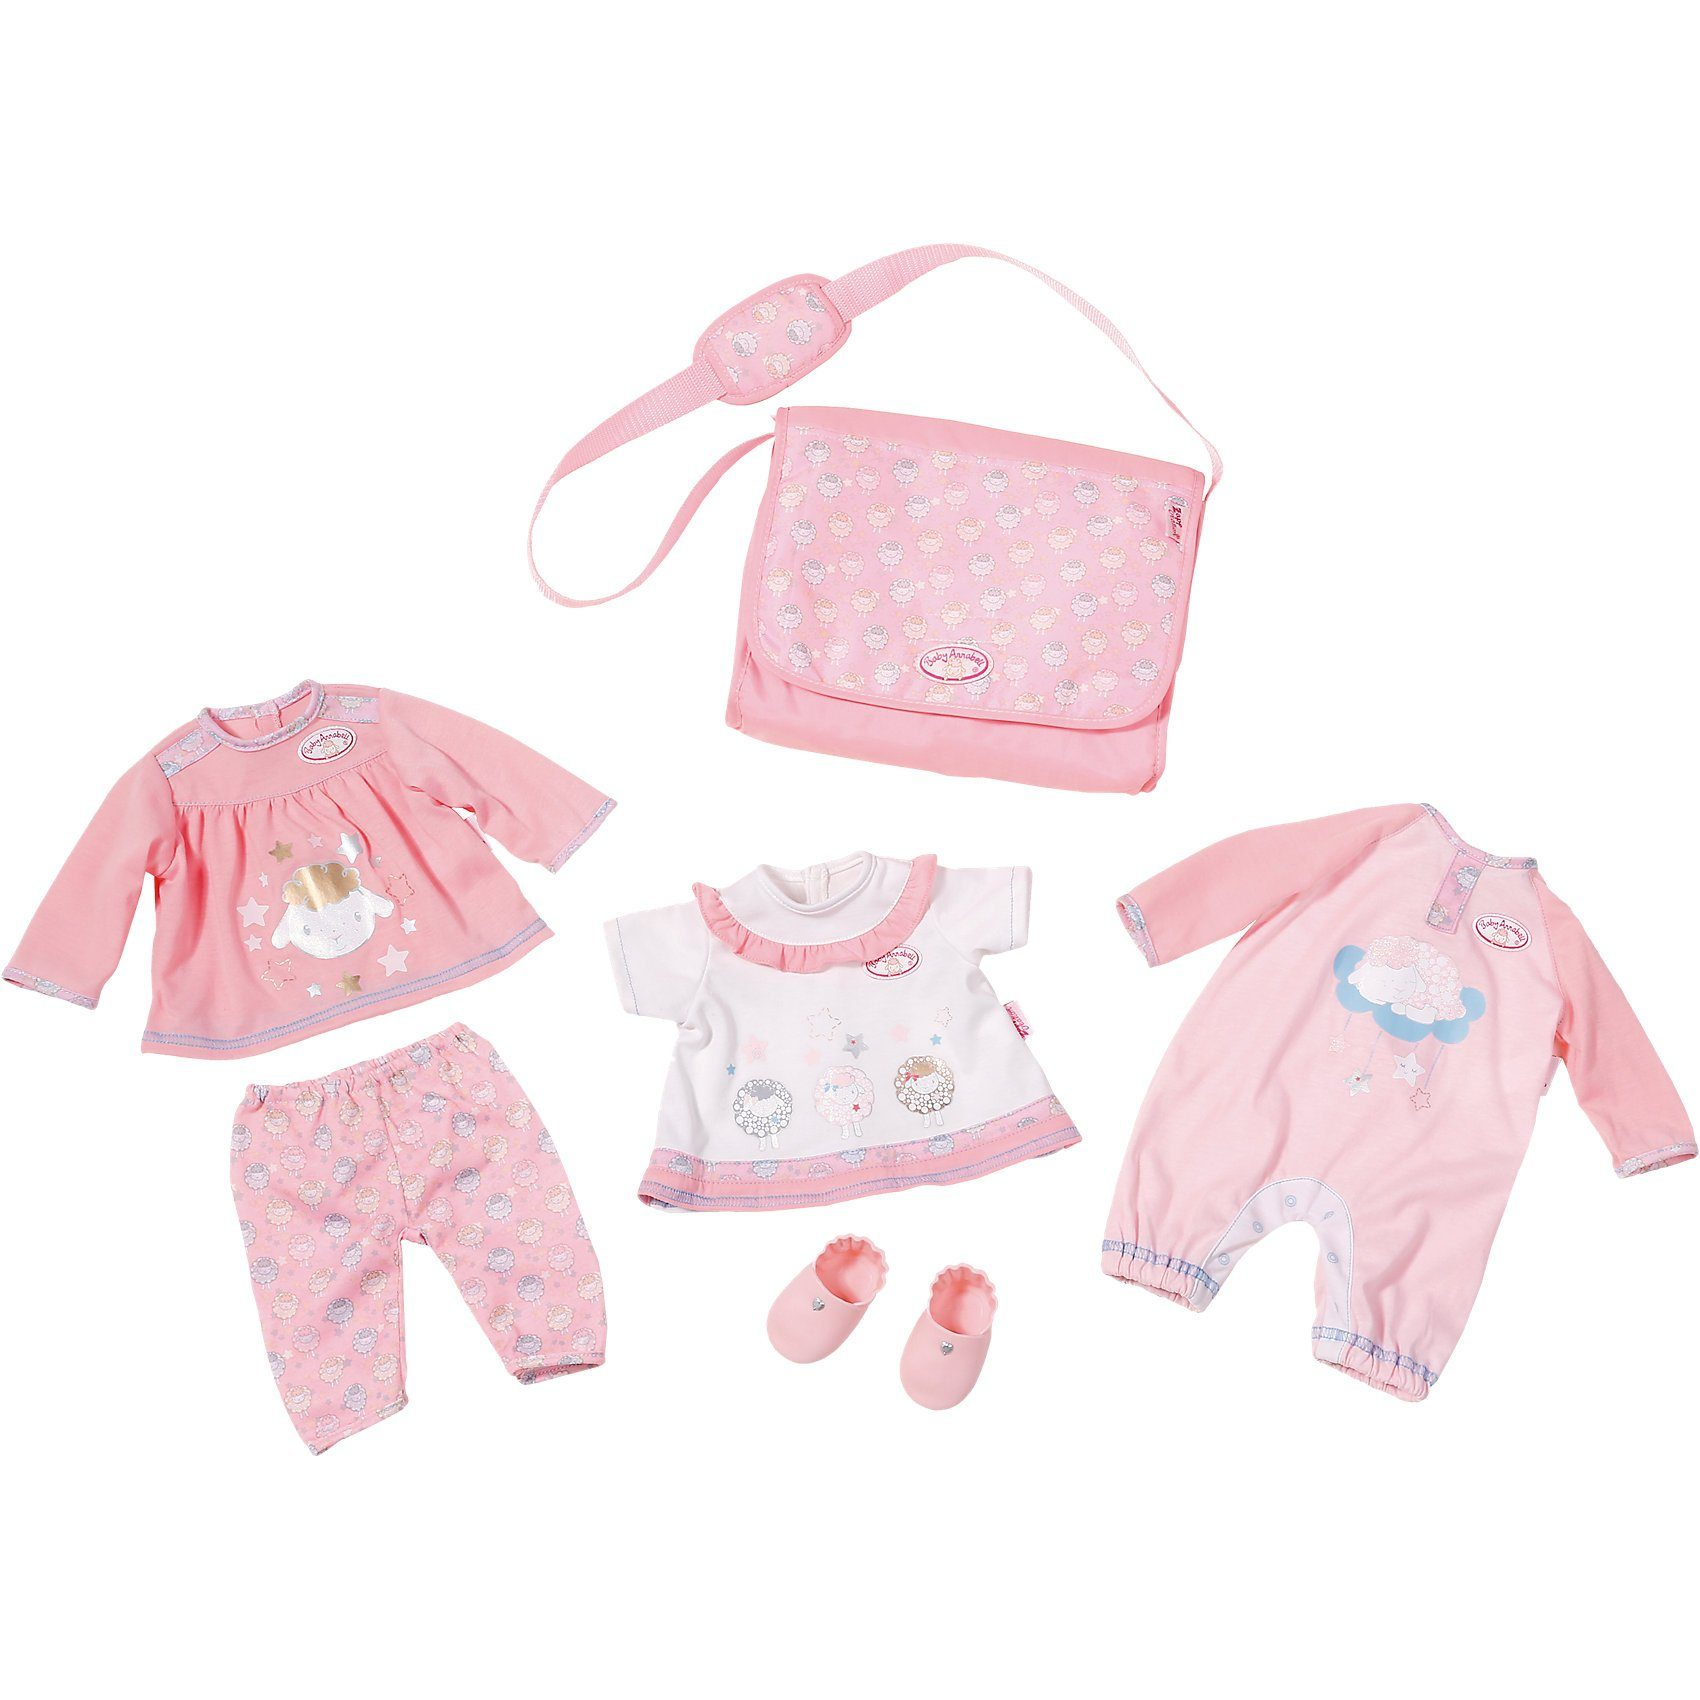 Zapf Creation® Baby Annabell® Puppenkleidung Great Value Pack classic